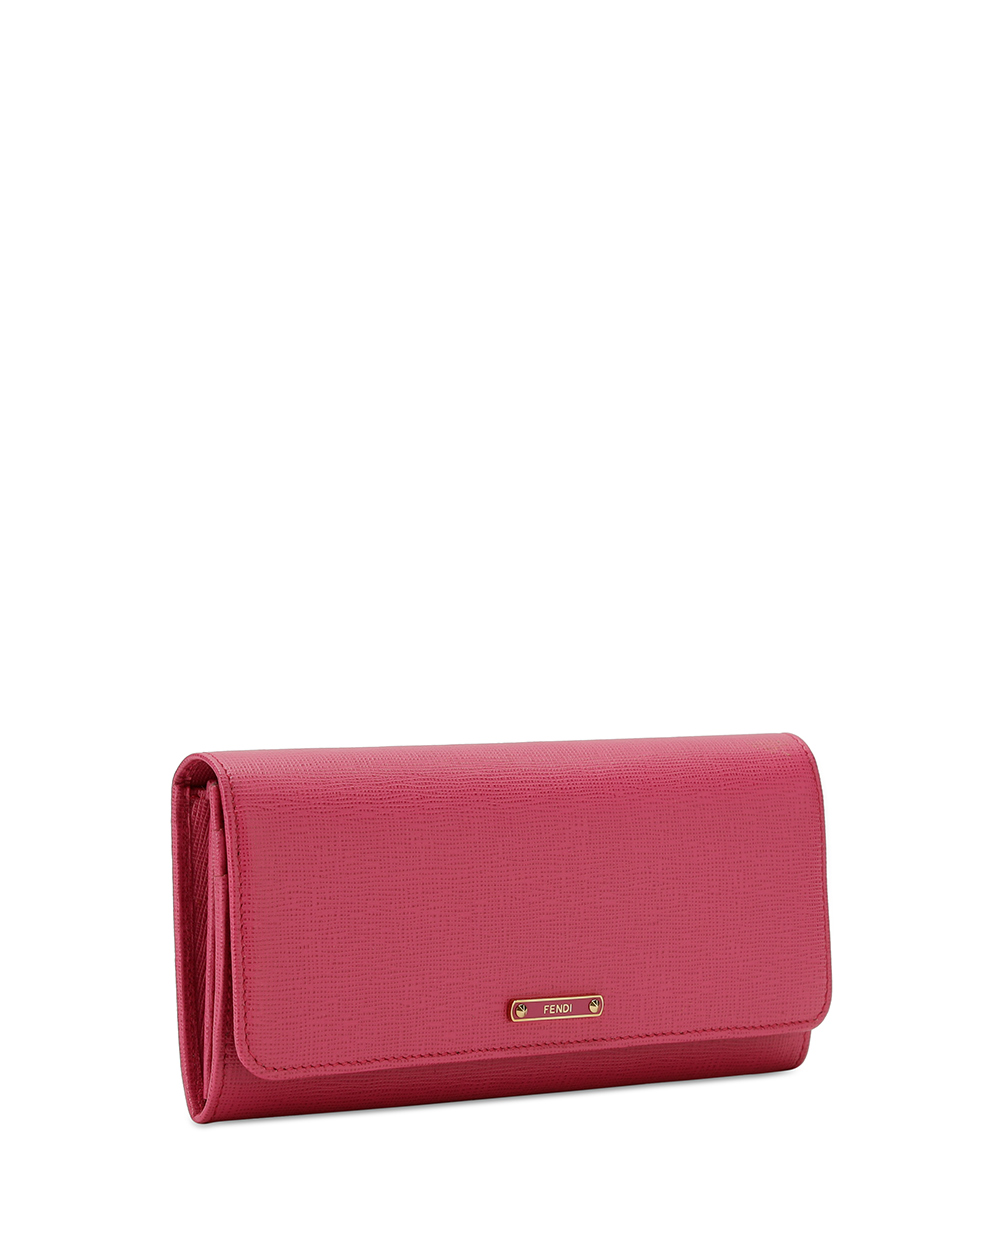 CRAYON Long Wallet 3